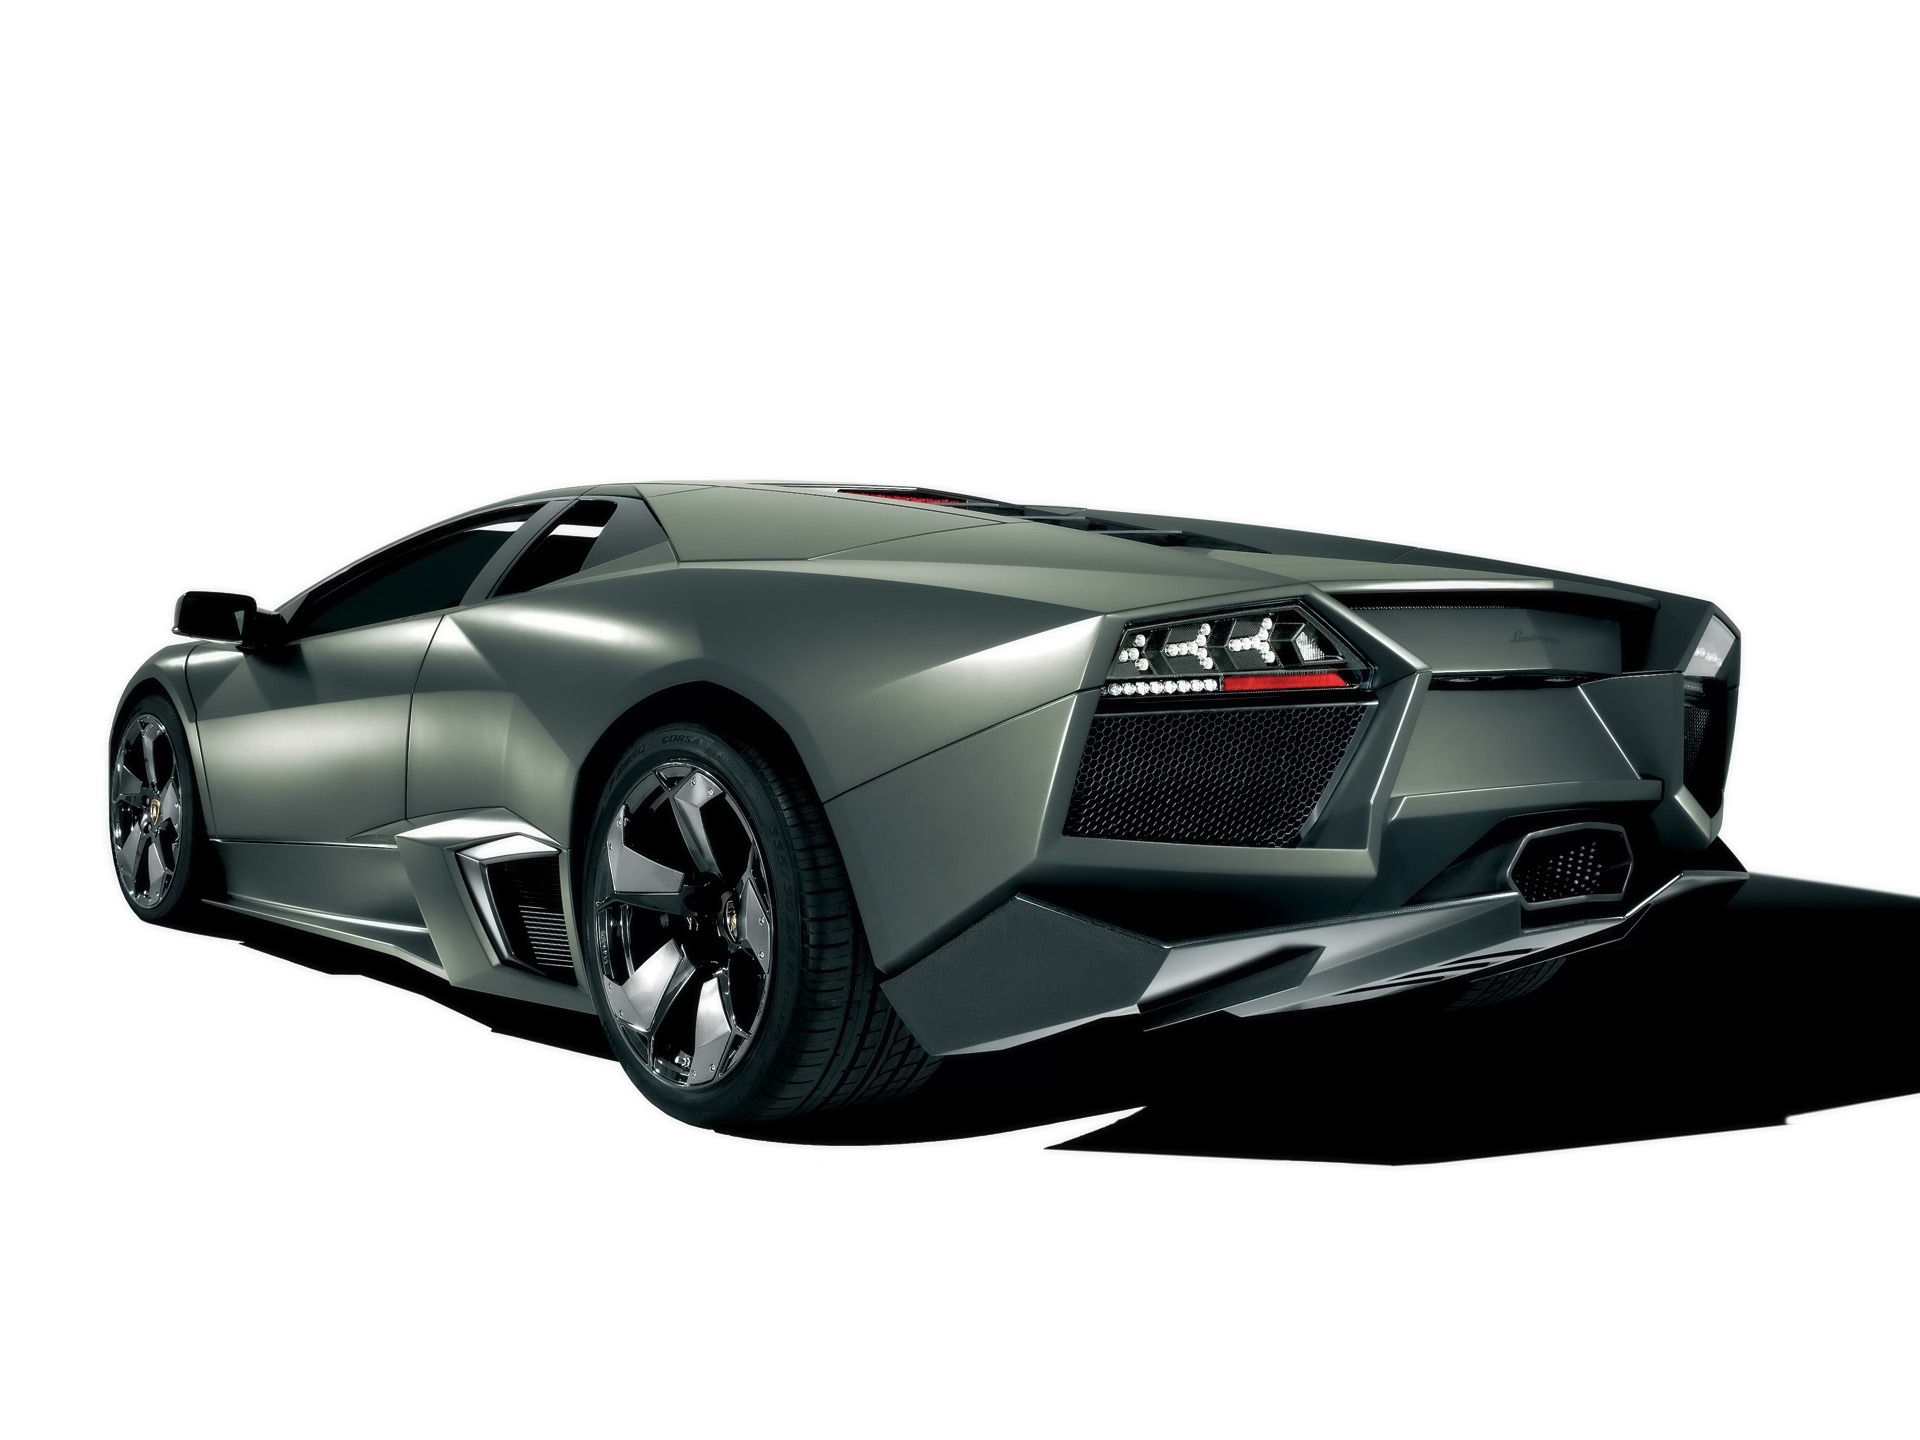 Lamborghini Reventon Rear Wallpaper Lamborghini Cars Wallpapers In